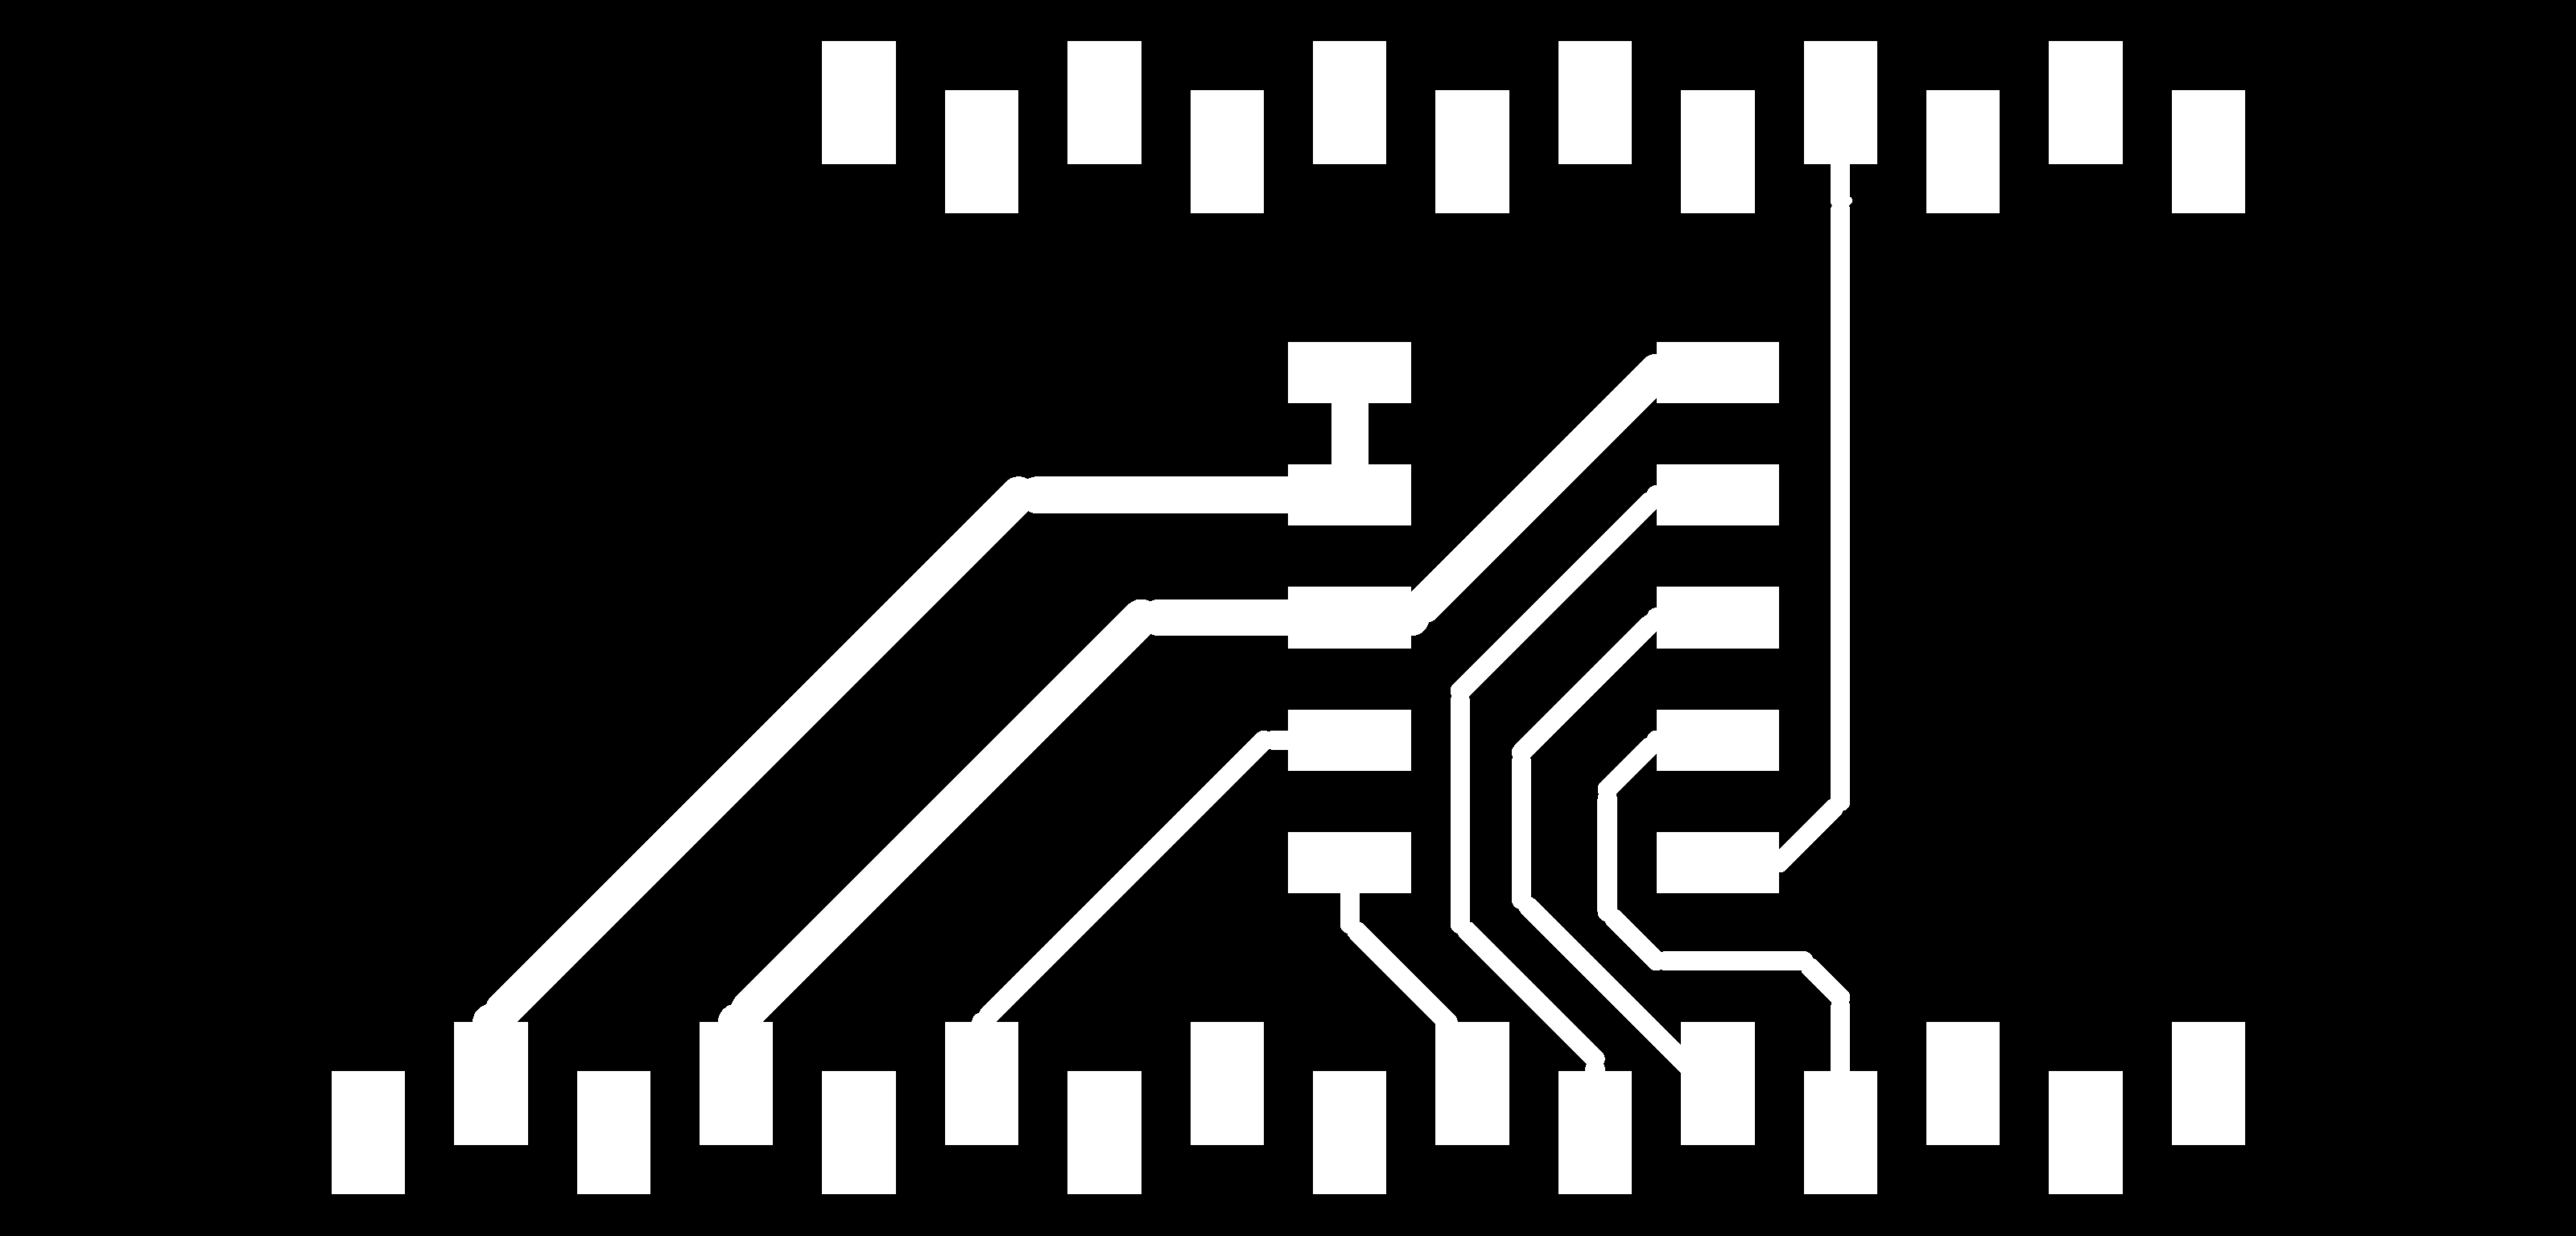 pcb/impact-logger-traces.png